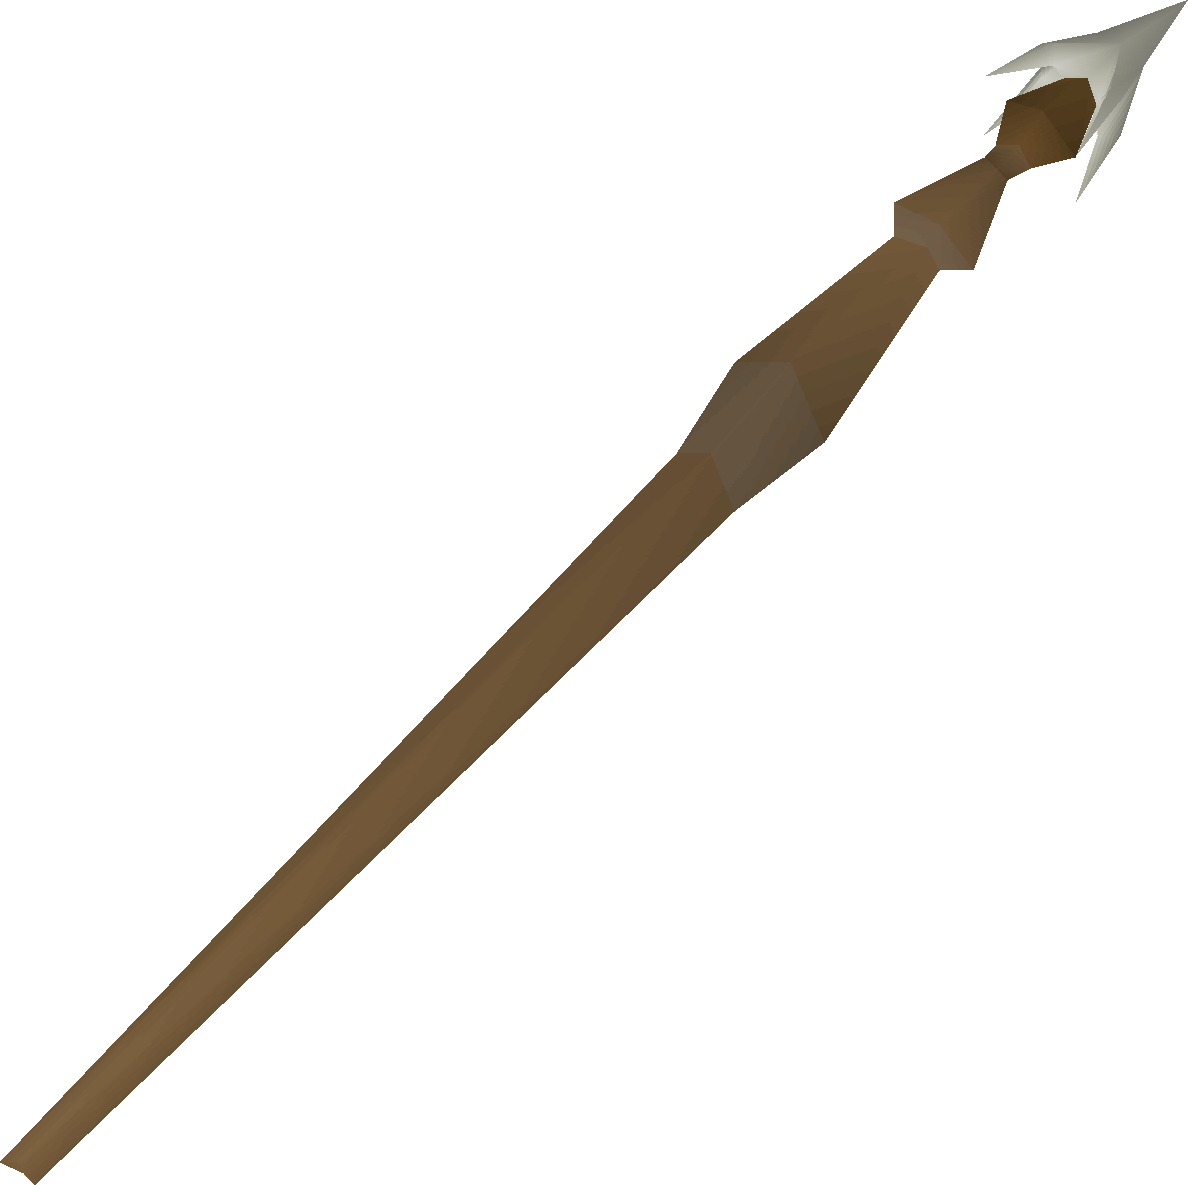 File:Barb-tail harpoon detail.png